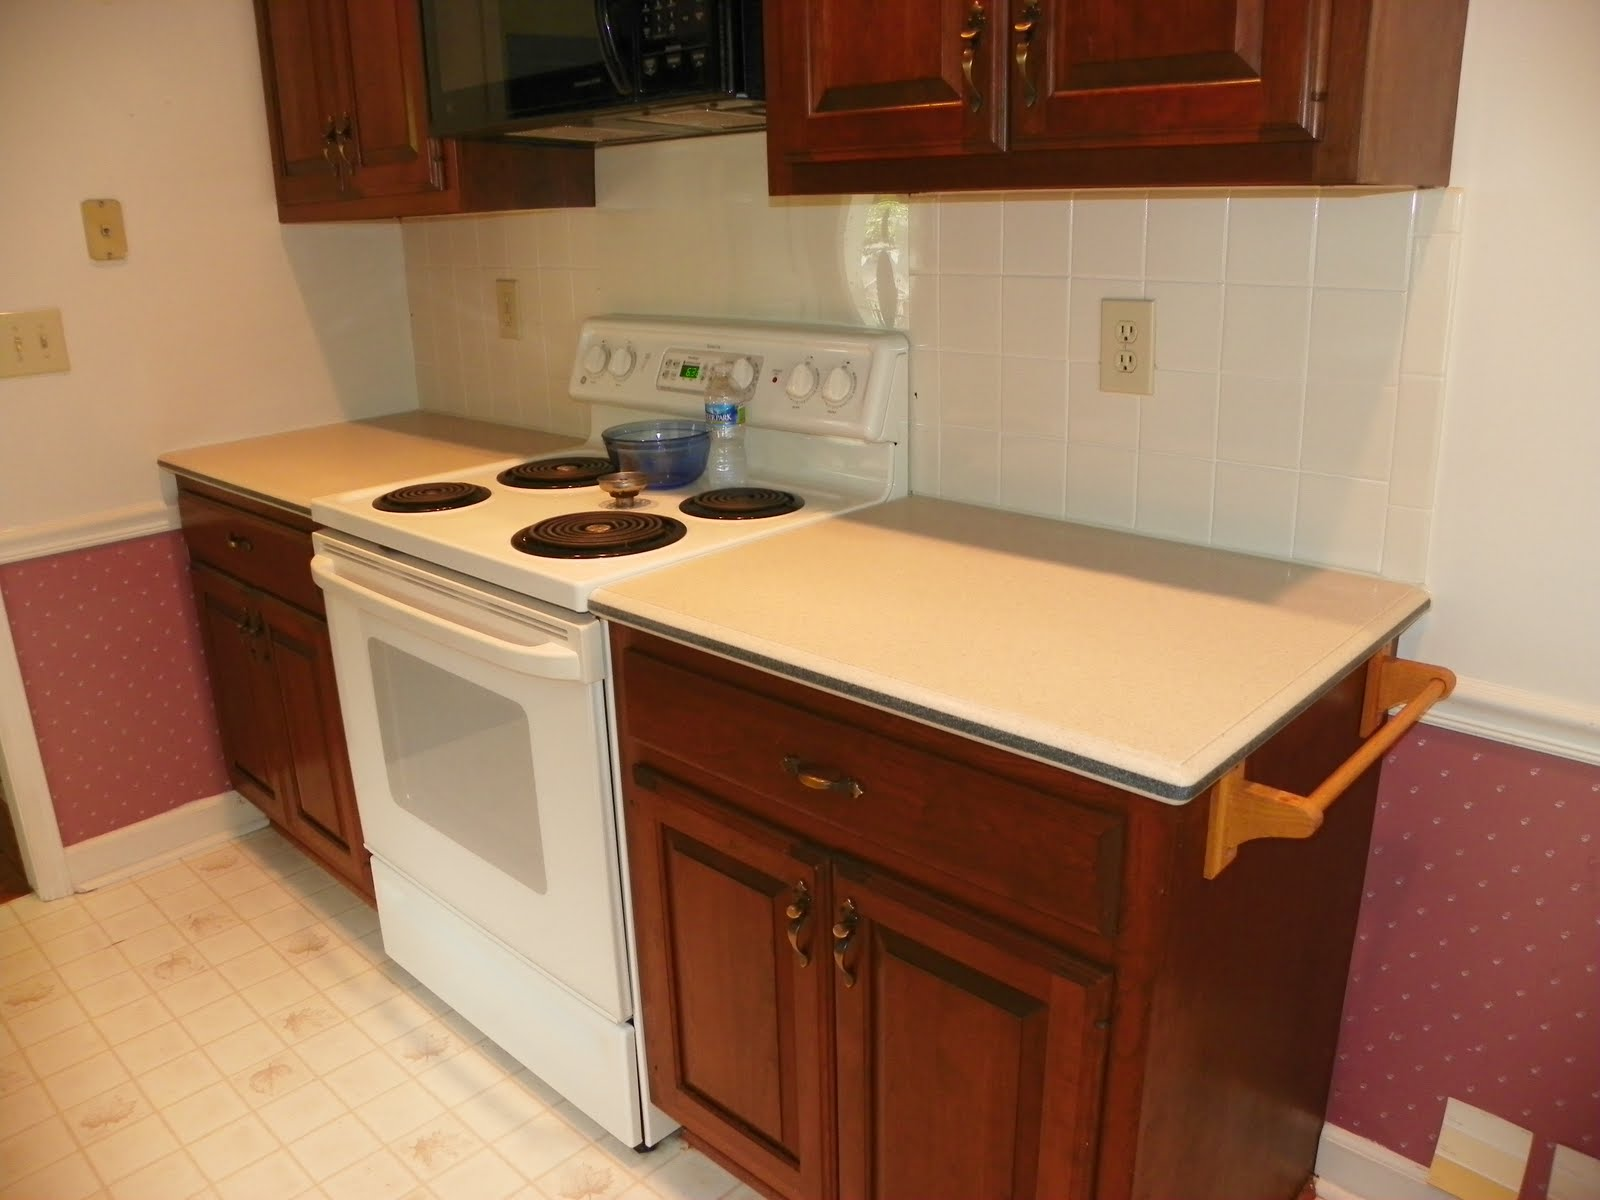 corian kitchen countertops and bathroom remodel the solid surface stone countertop repair blog retro